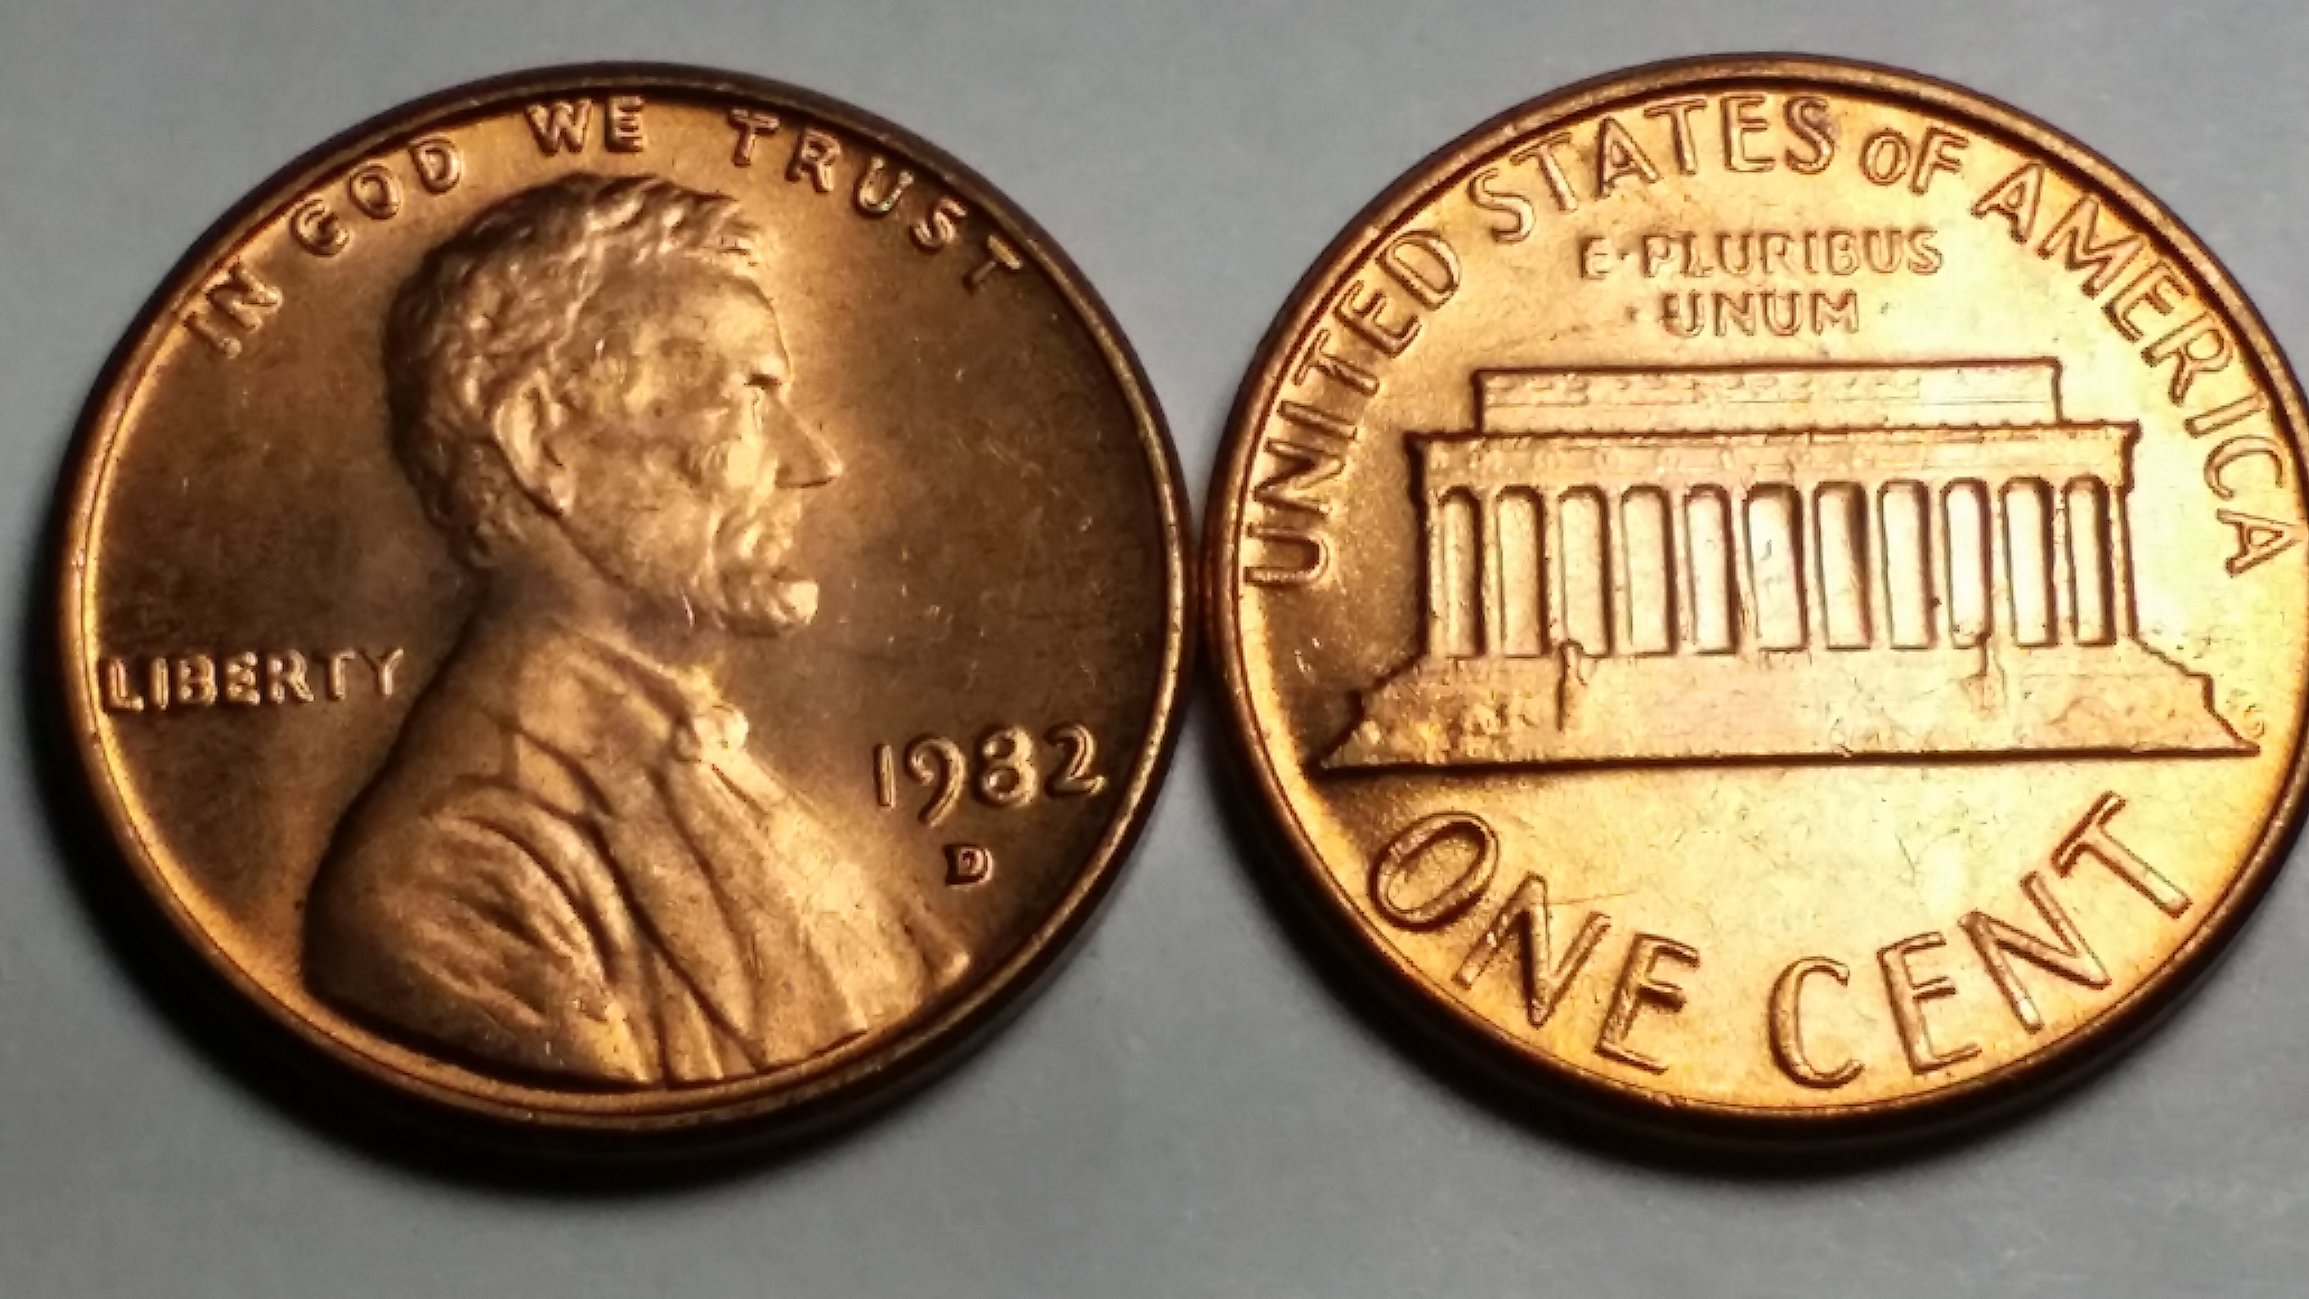 1982-D Lincoln Cents - 3 11g? — Collectors Universe